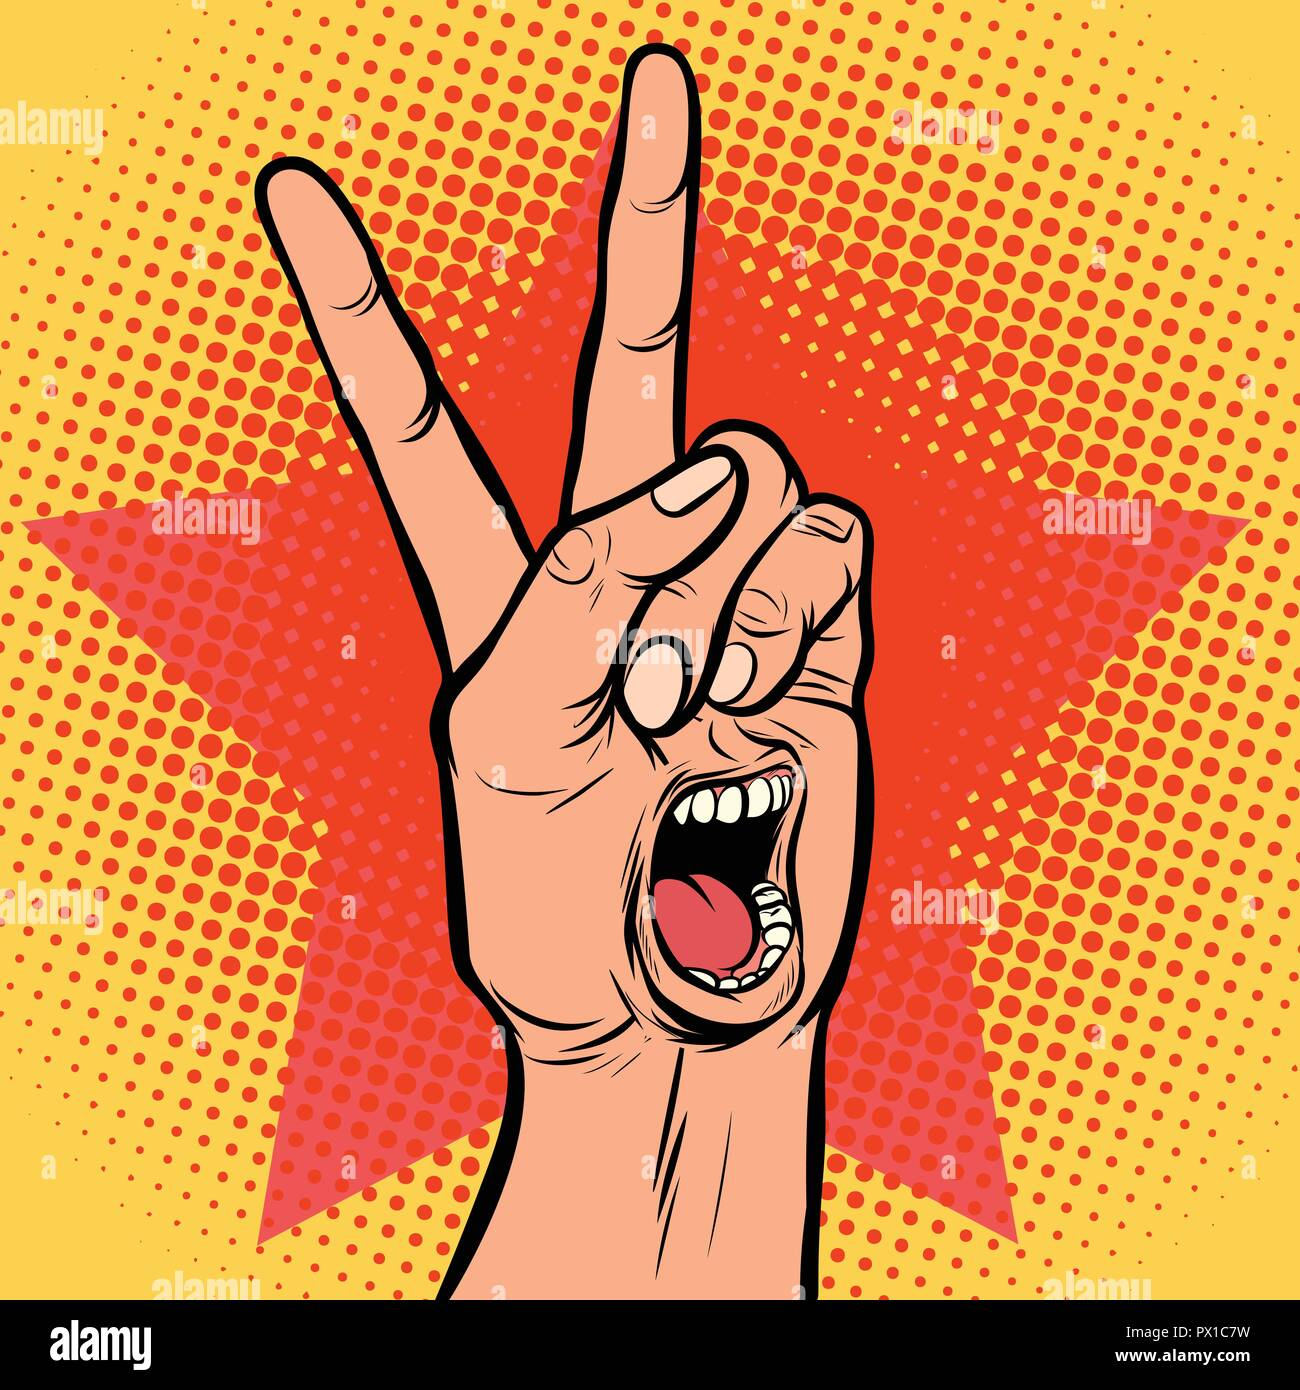 scream delight mouth emotion hand victory gesture - Stock Image